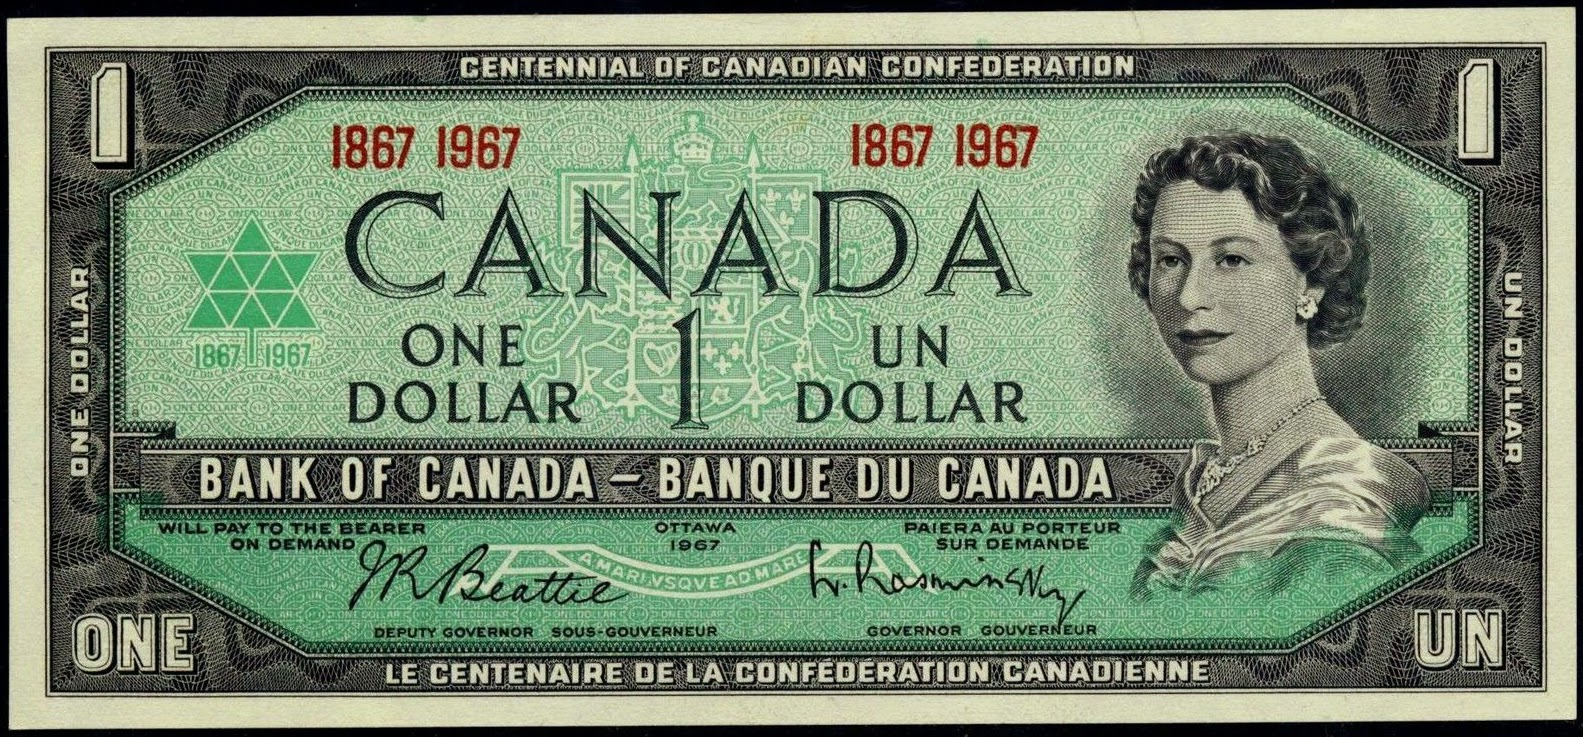 One Dollar Note 1967 Centennial Of Canadian Confederation